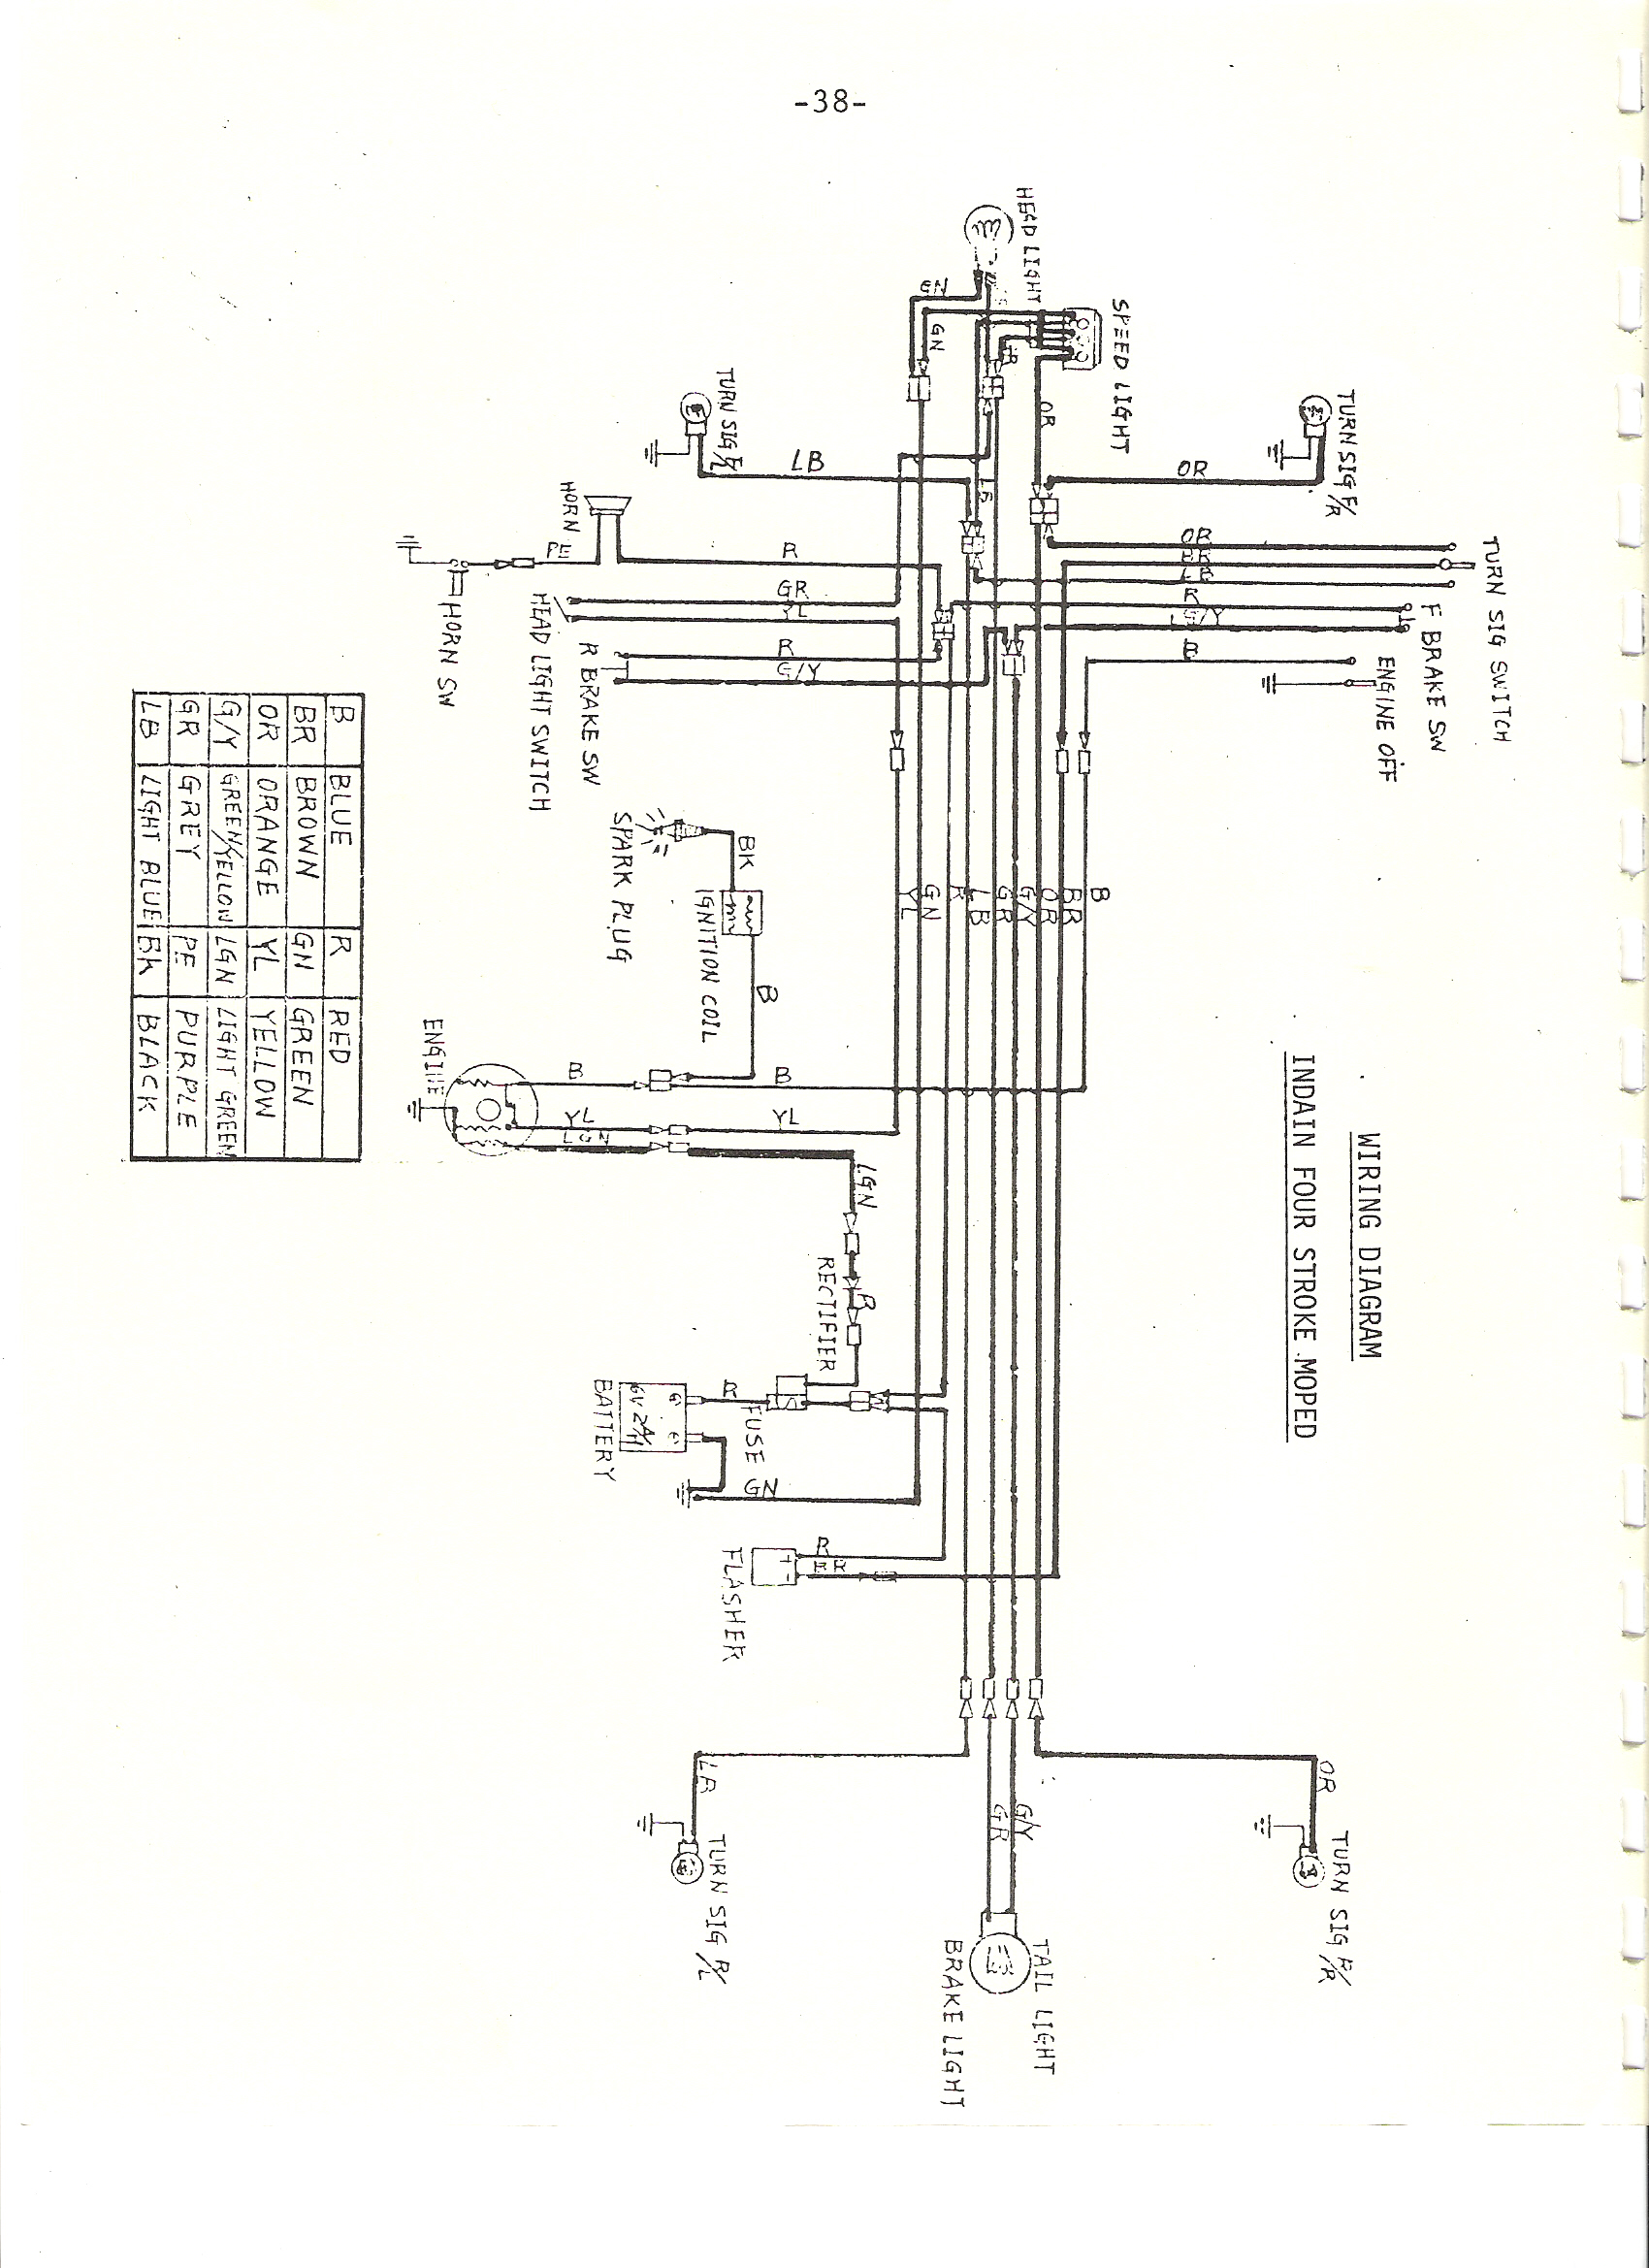 1980 Indian Chief wiring diagram? — Moped Army on indian chieftess, indian cheif, indian hunter, indian centaur, indian books, indian viking, indian jeronimo, indian br, indian arrow, indian chie, indian brave, indian man, indian boxer, indian chief, indian diamond, indian cartoon, indian warrior, indian dragon, indian emperor, indian leader,